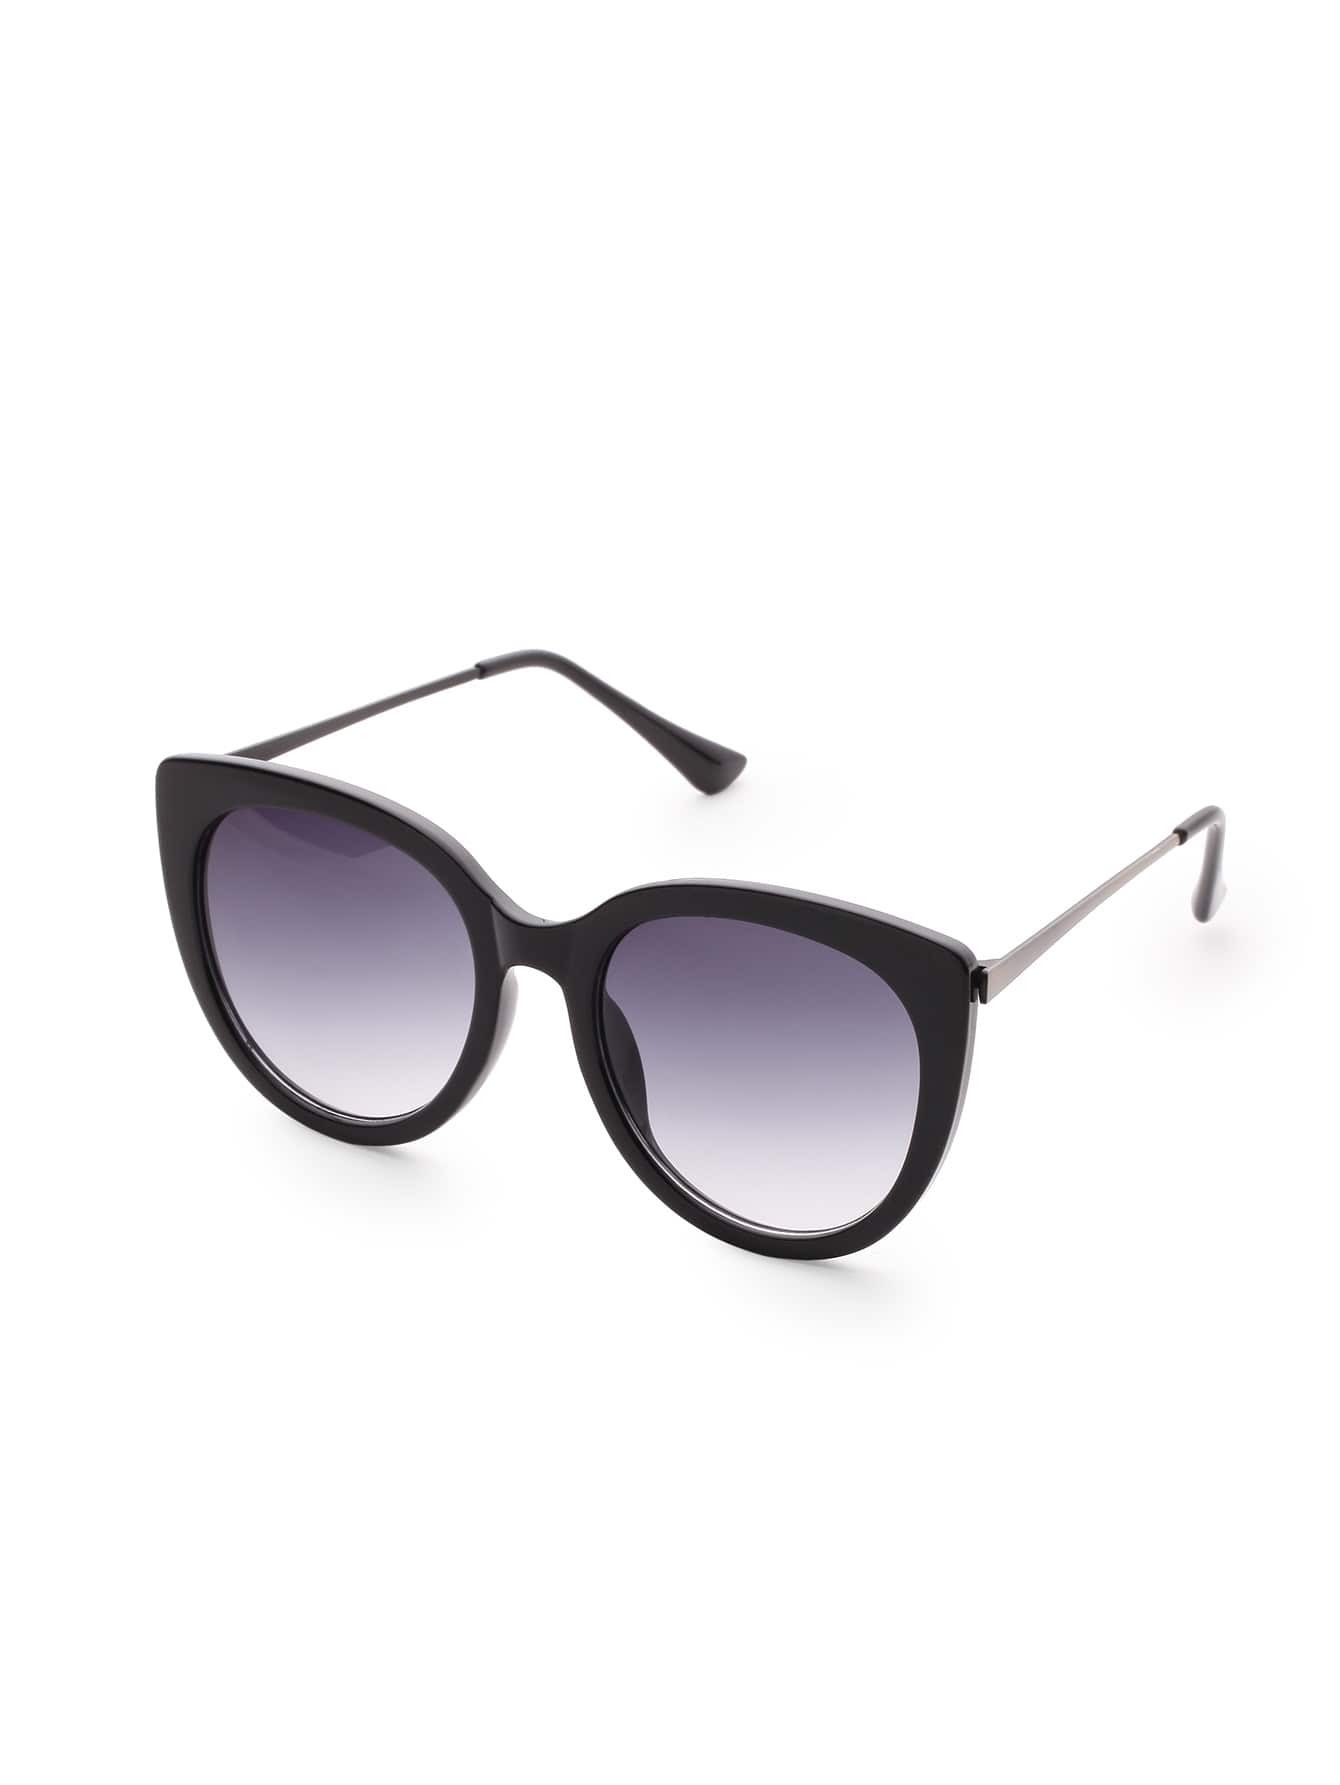 Black Frame Cat Eye Sunglasses sunglass170324302